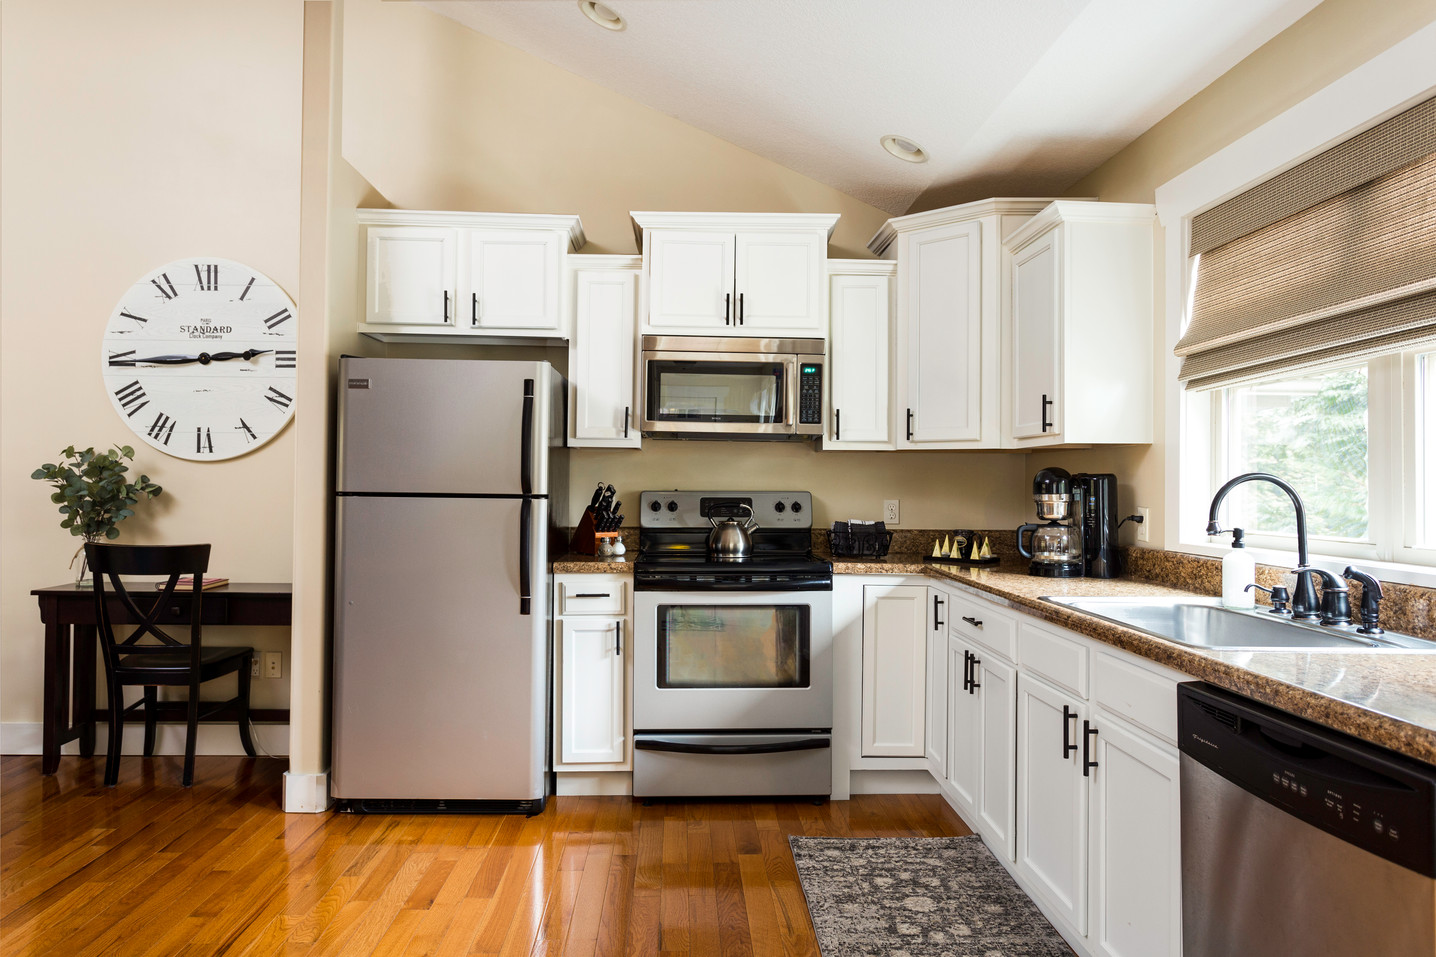 A full size kitchen in this cabin rental in Asheville